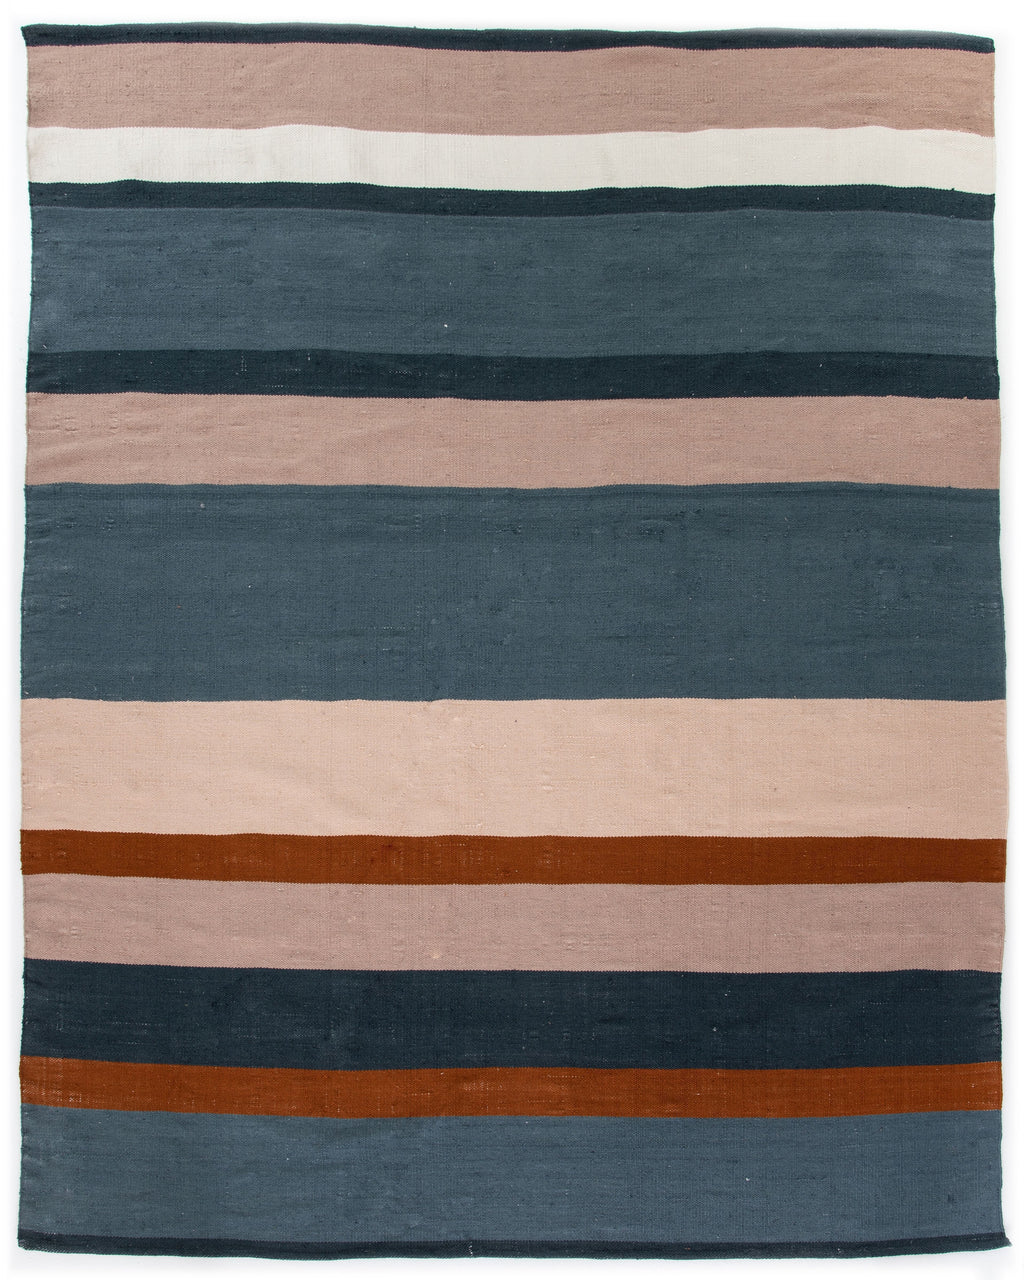 Senna Outdoor Navy/Orange/Blush Rug